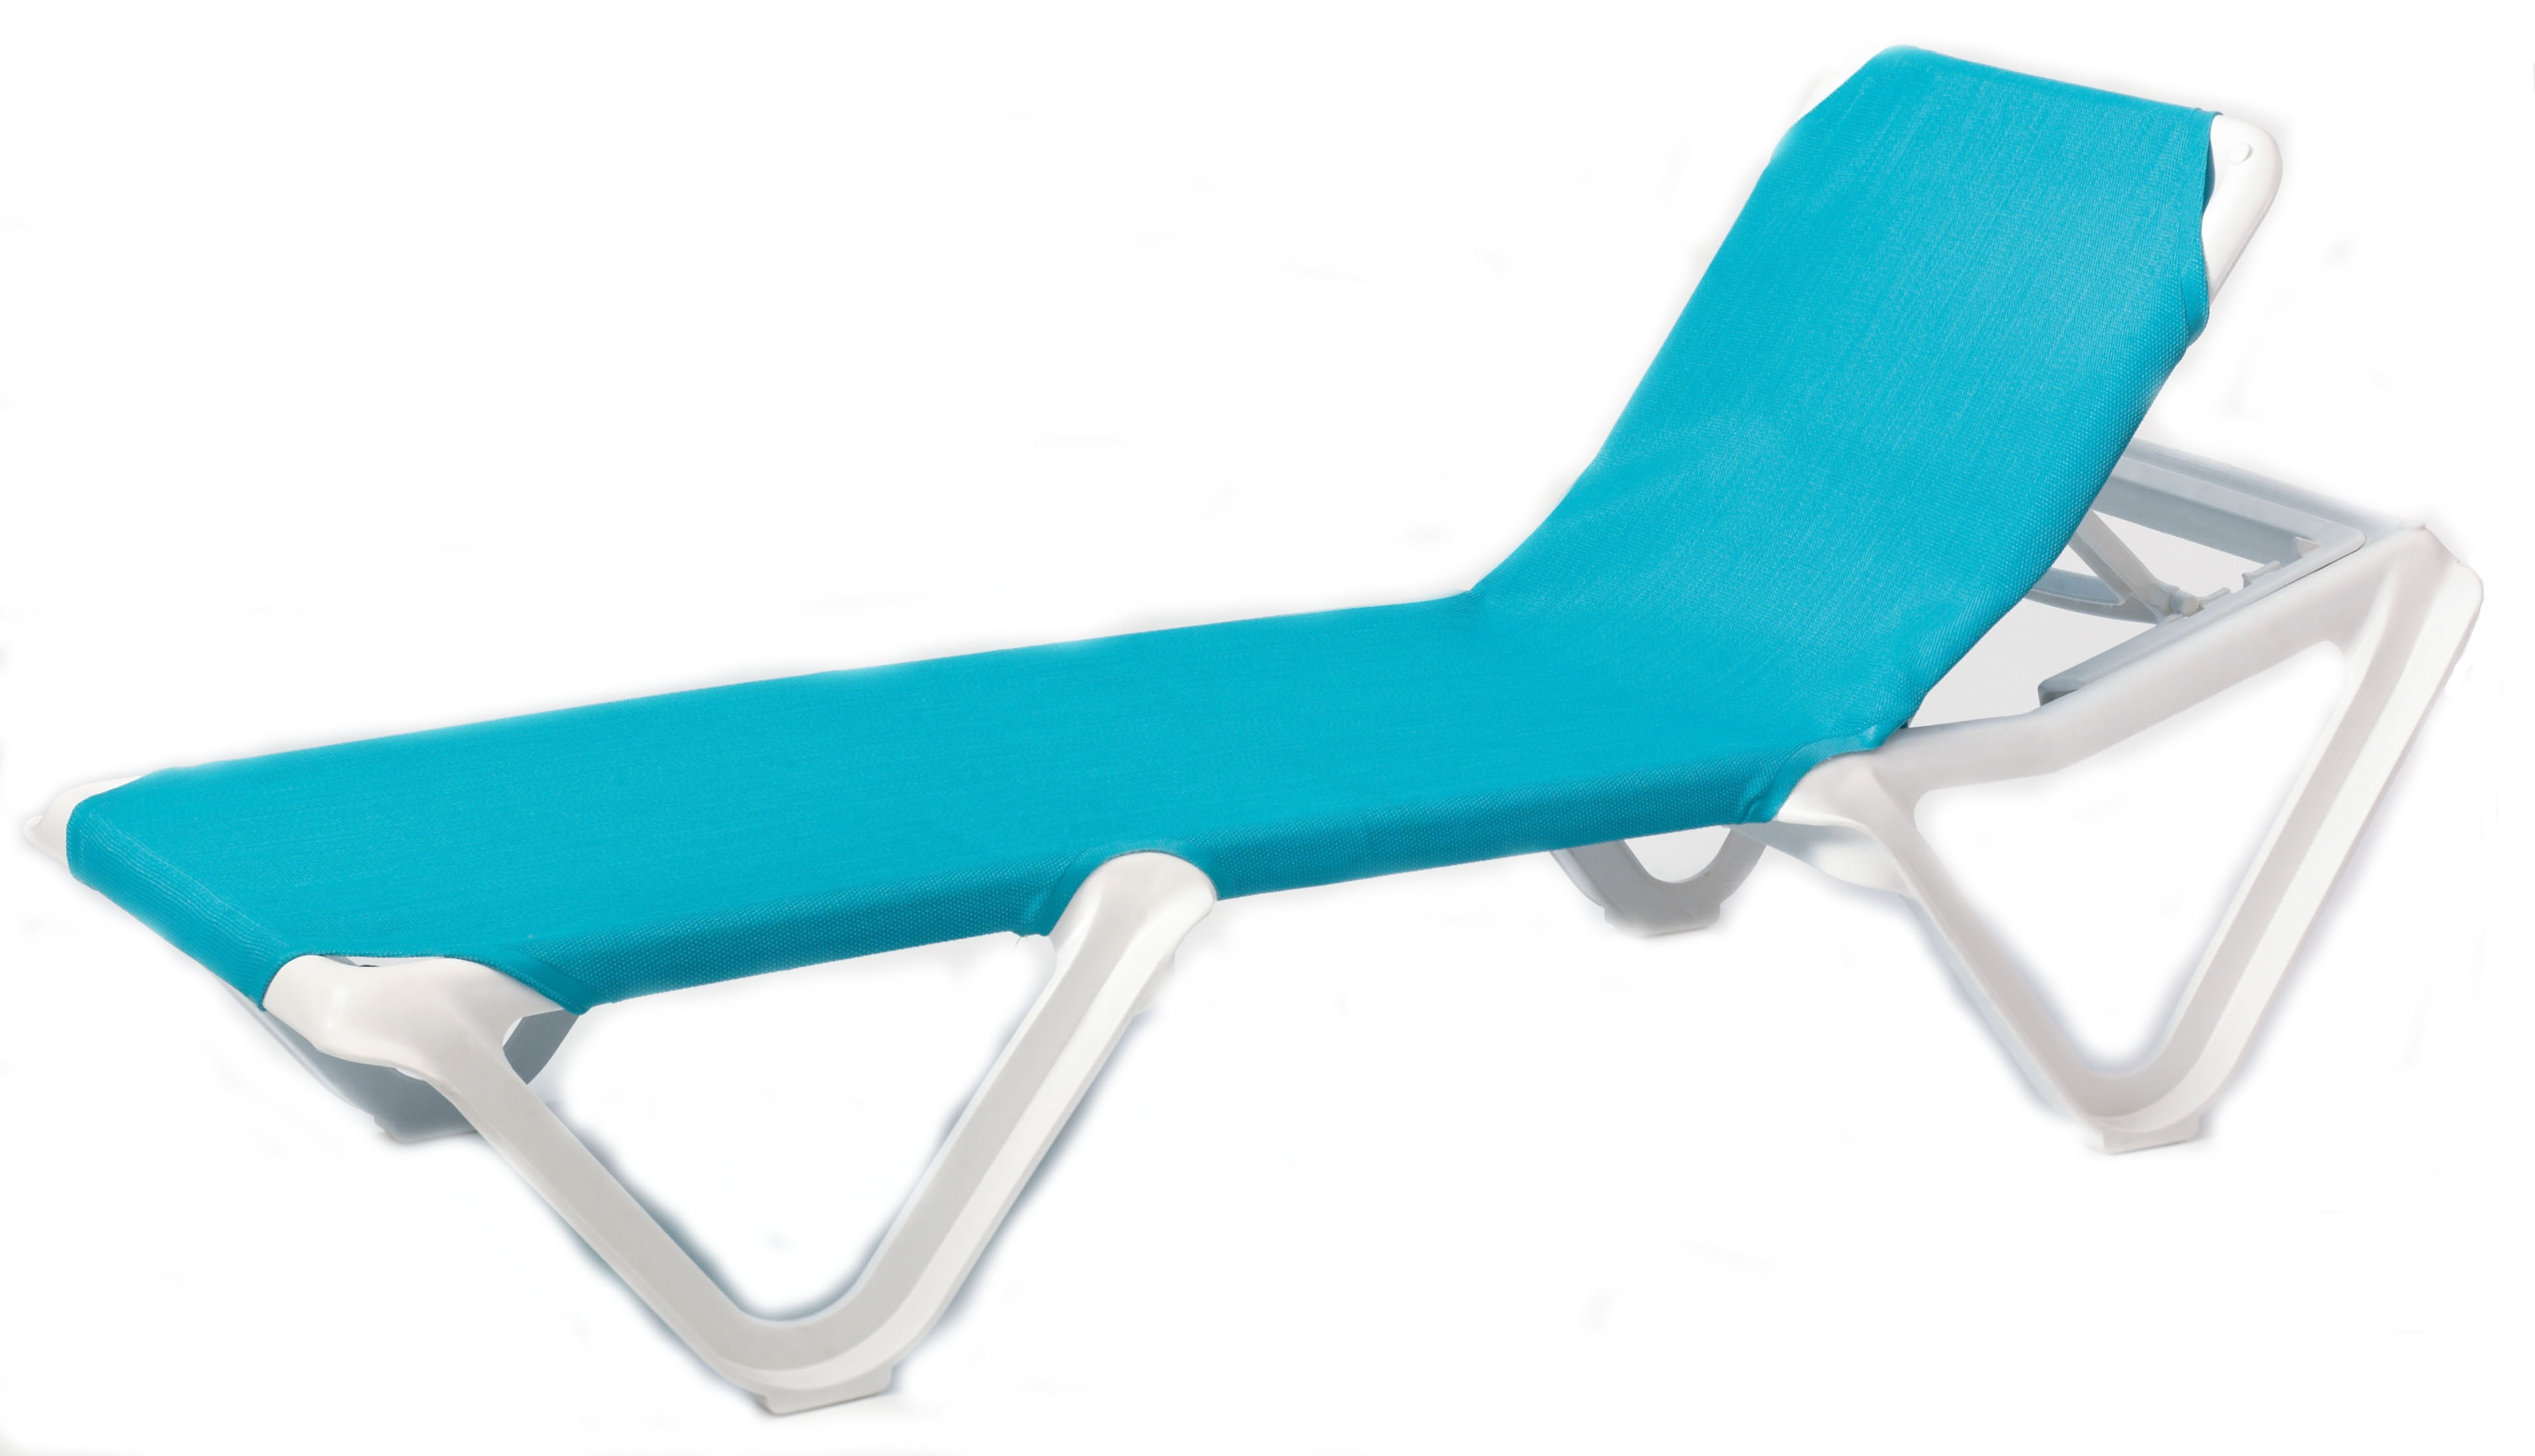 Grosfillex Nautical Adjustable Resin Sling Chaise Lounge Chair W/o Intended For 2018 Chaise Lounge Chairs Without Arms (View 10 of 15)